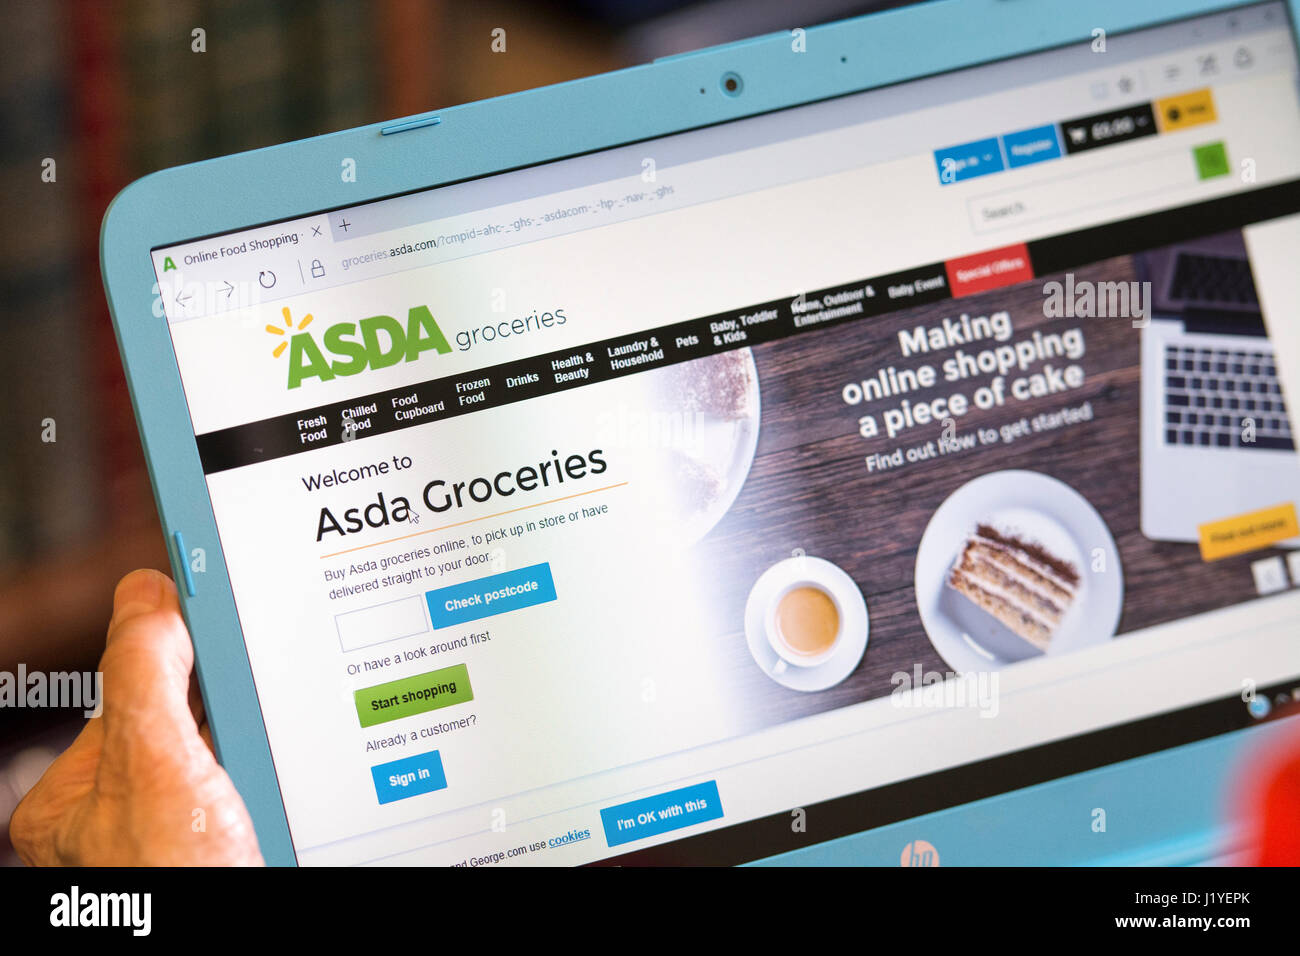 ASDA Groceries shopping buying online website screen page Grocery - Stock Image